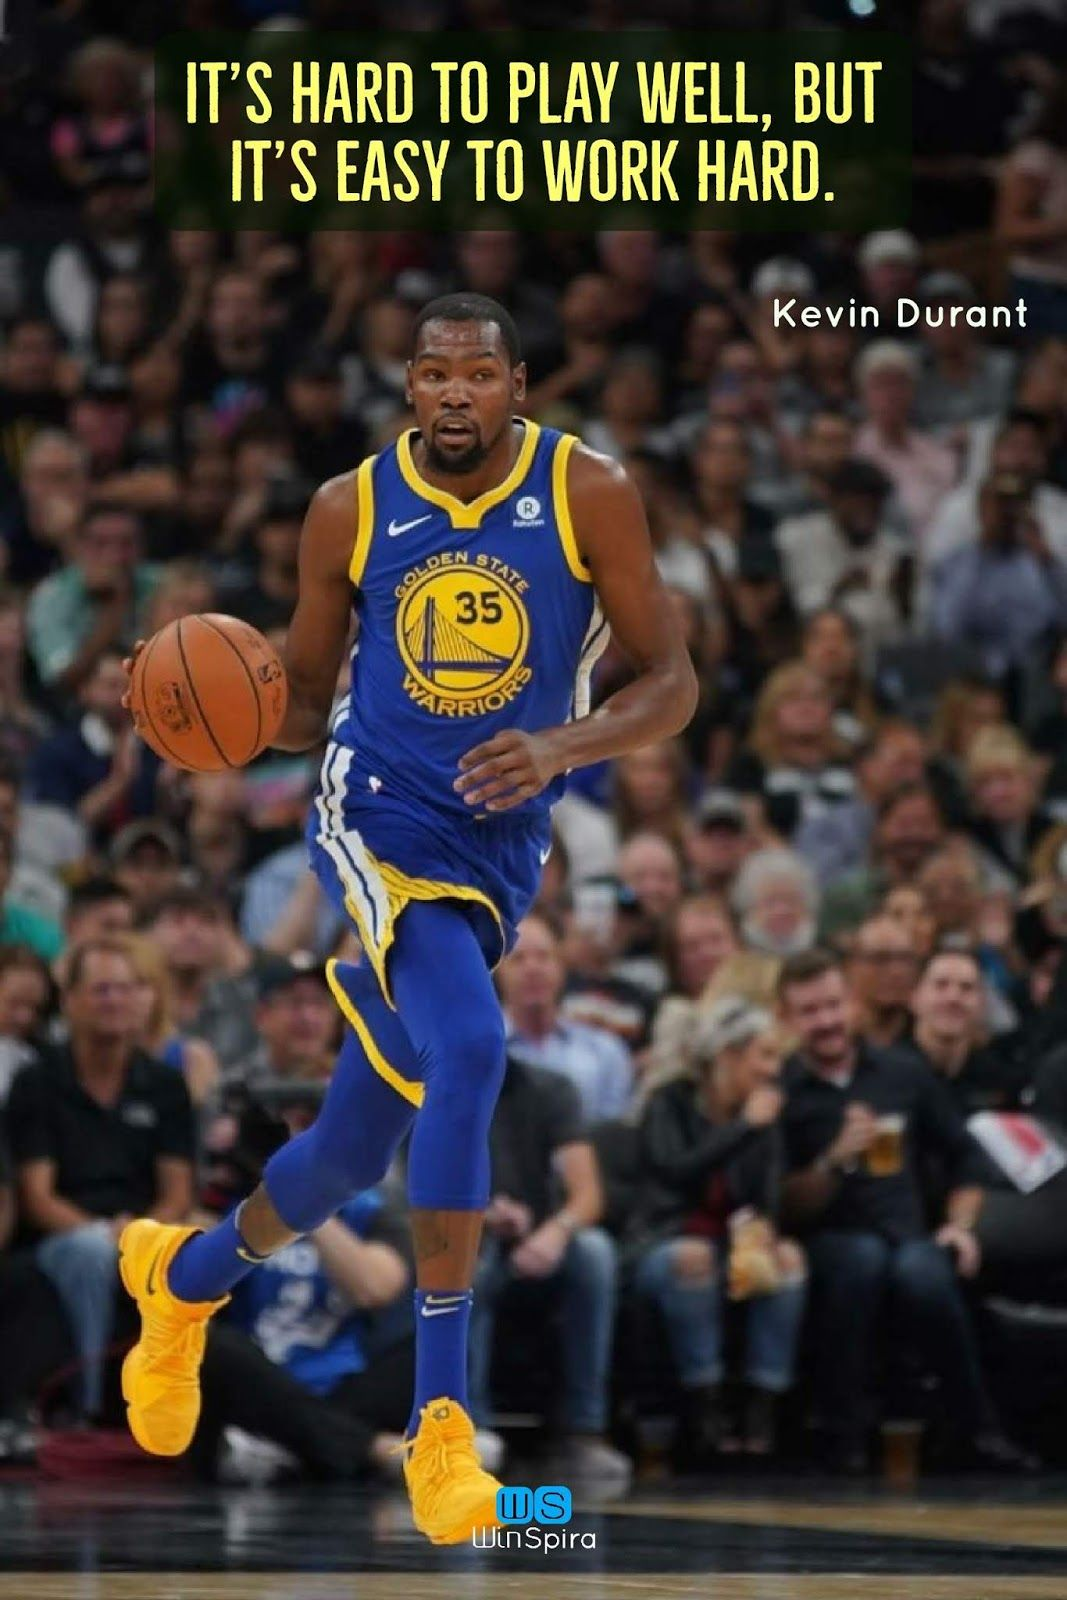 20 Inspirational Kevin Durant s Quotes  6b4851ccaf9d5